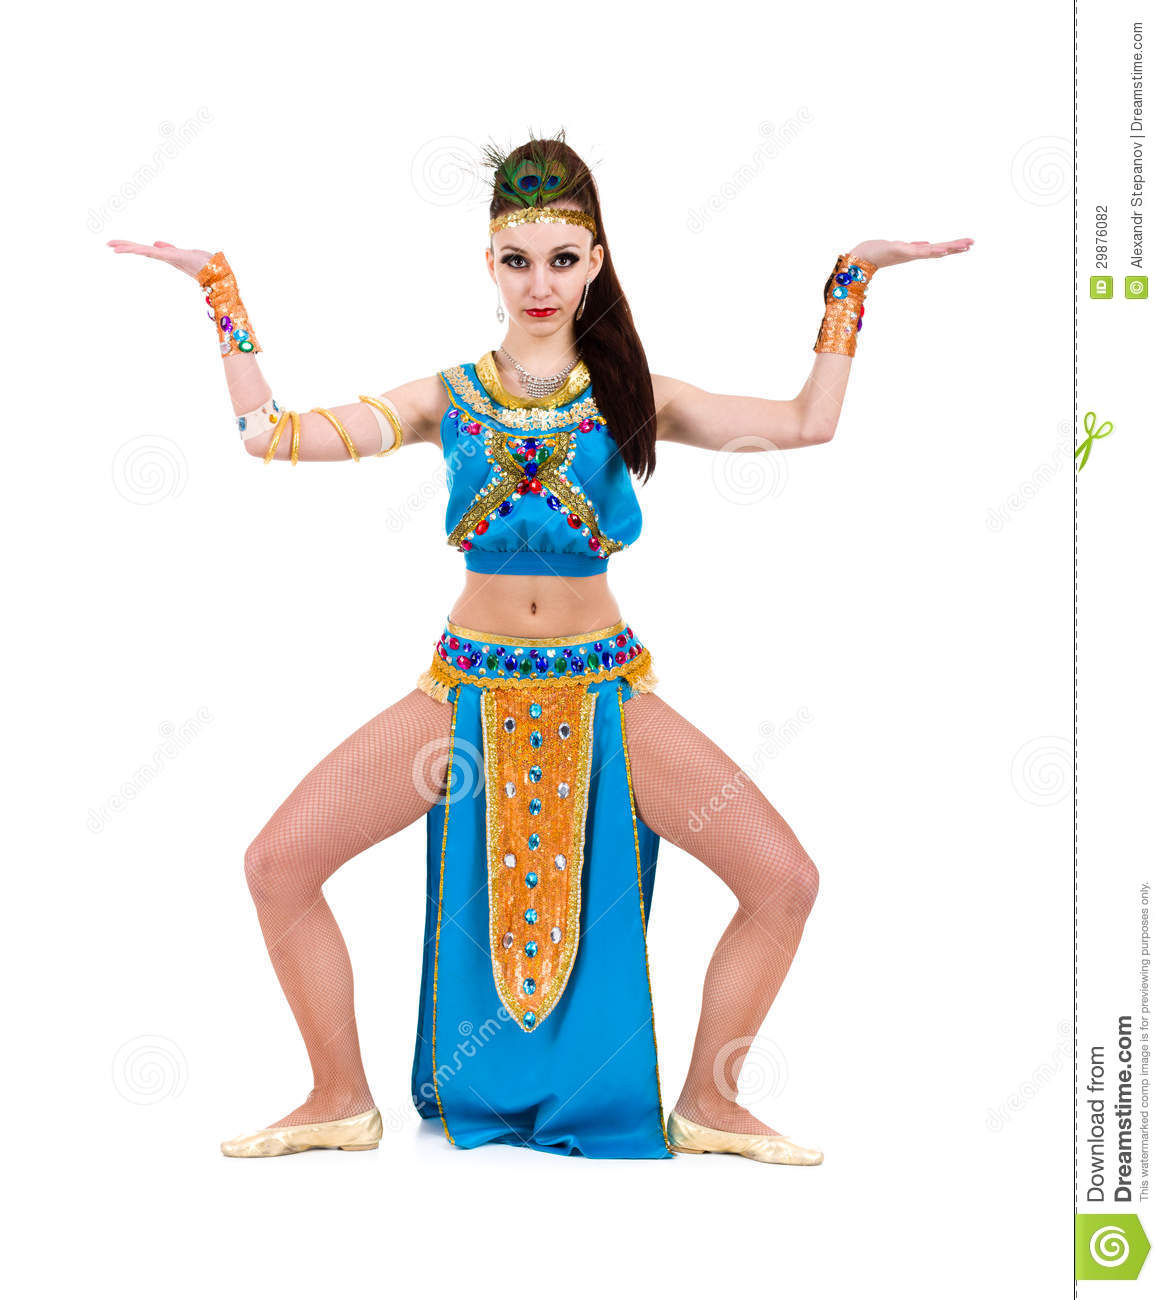 Dancing pharaoh woman wearing a egyptian costume. Isolated on white